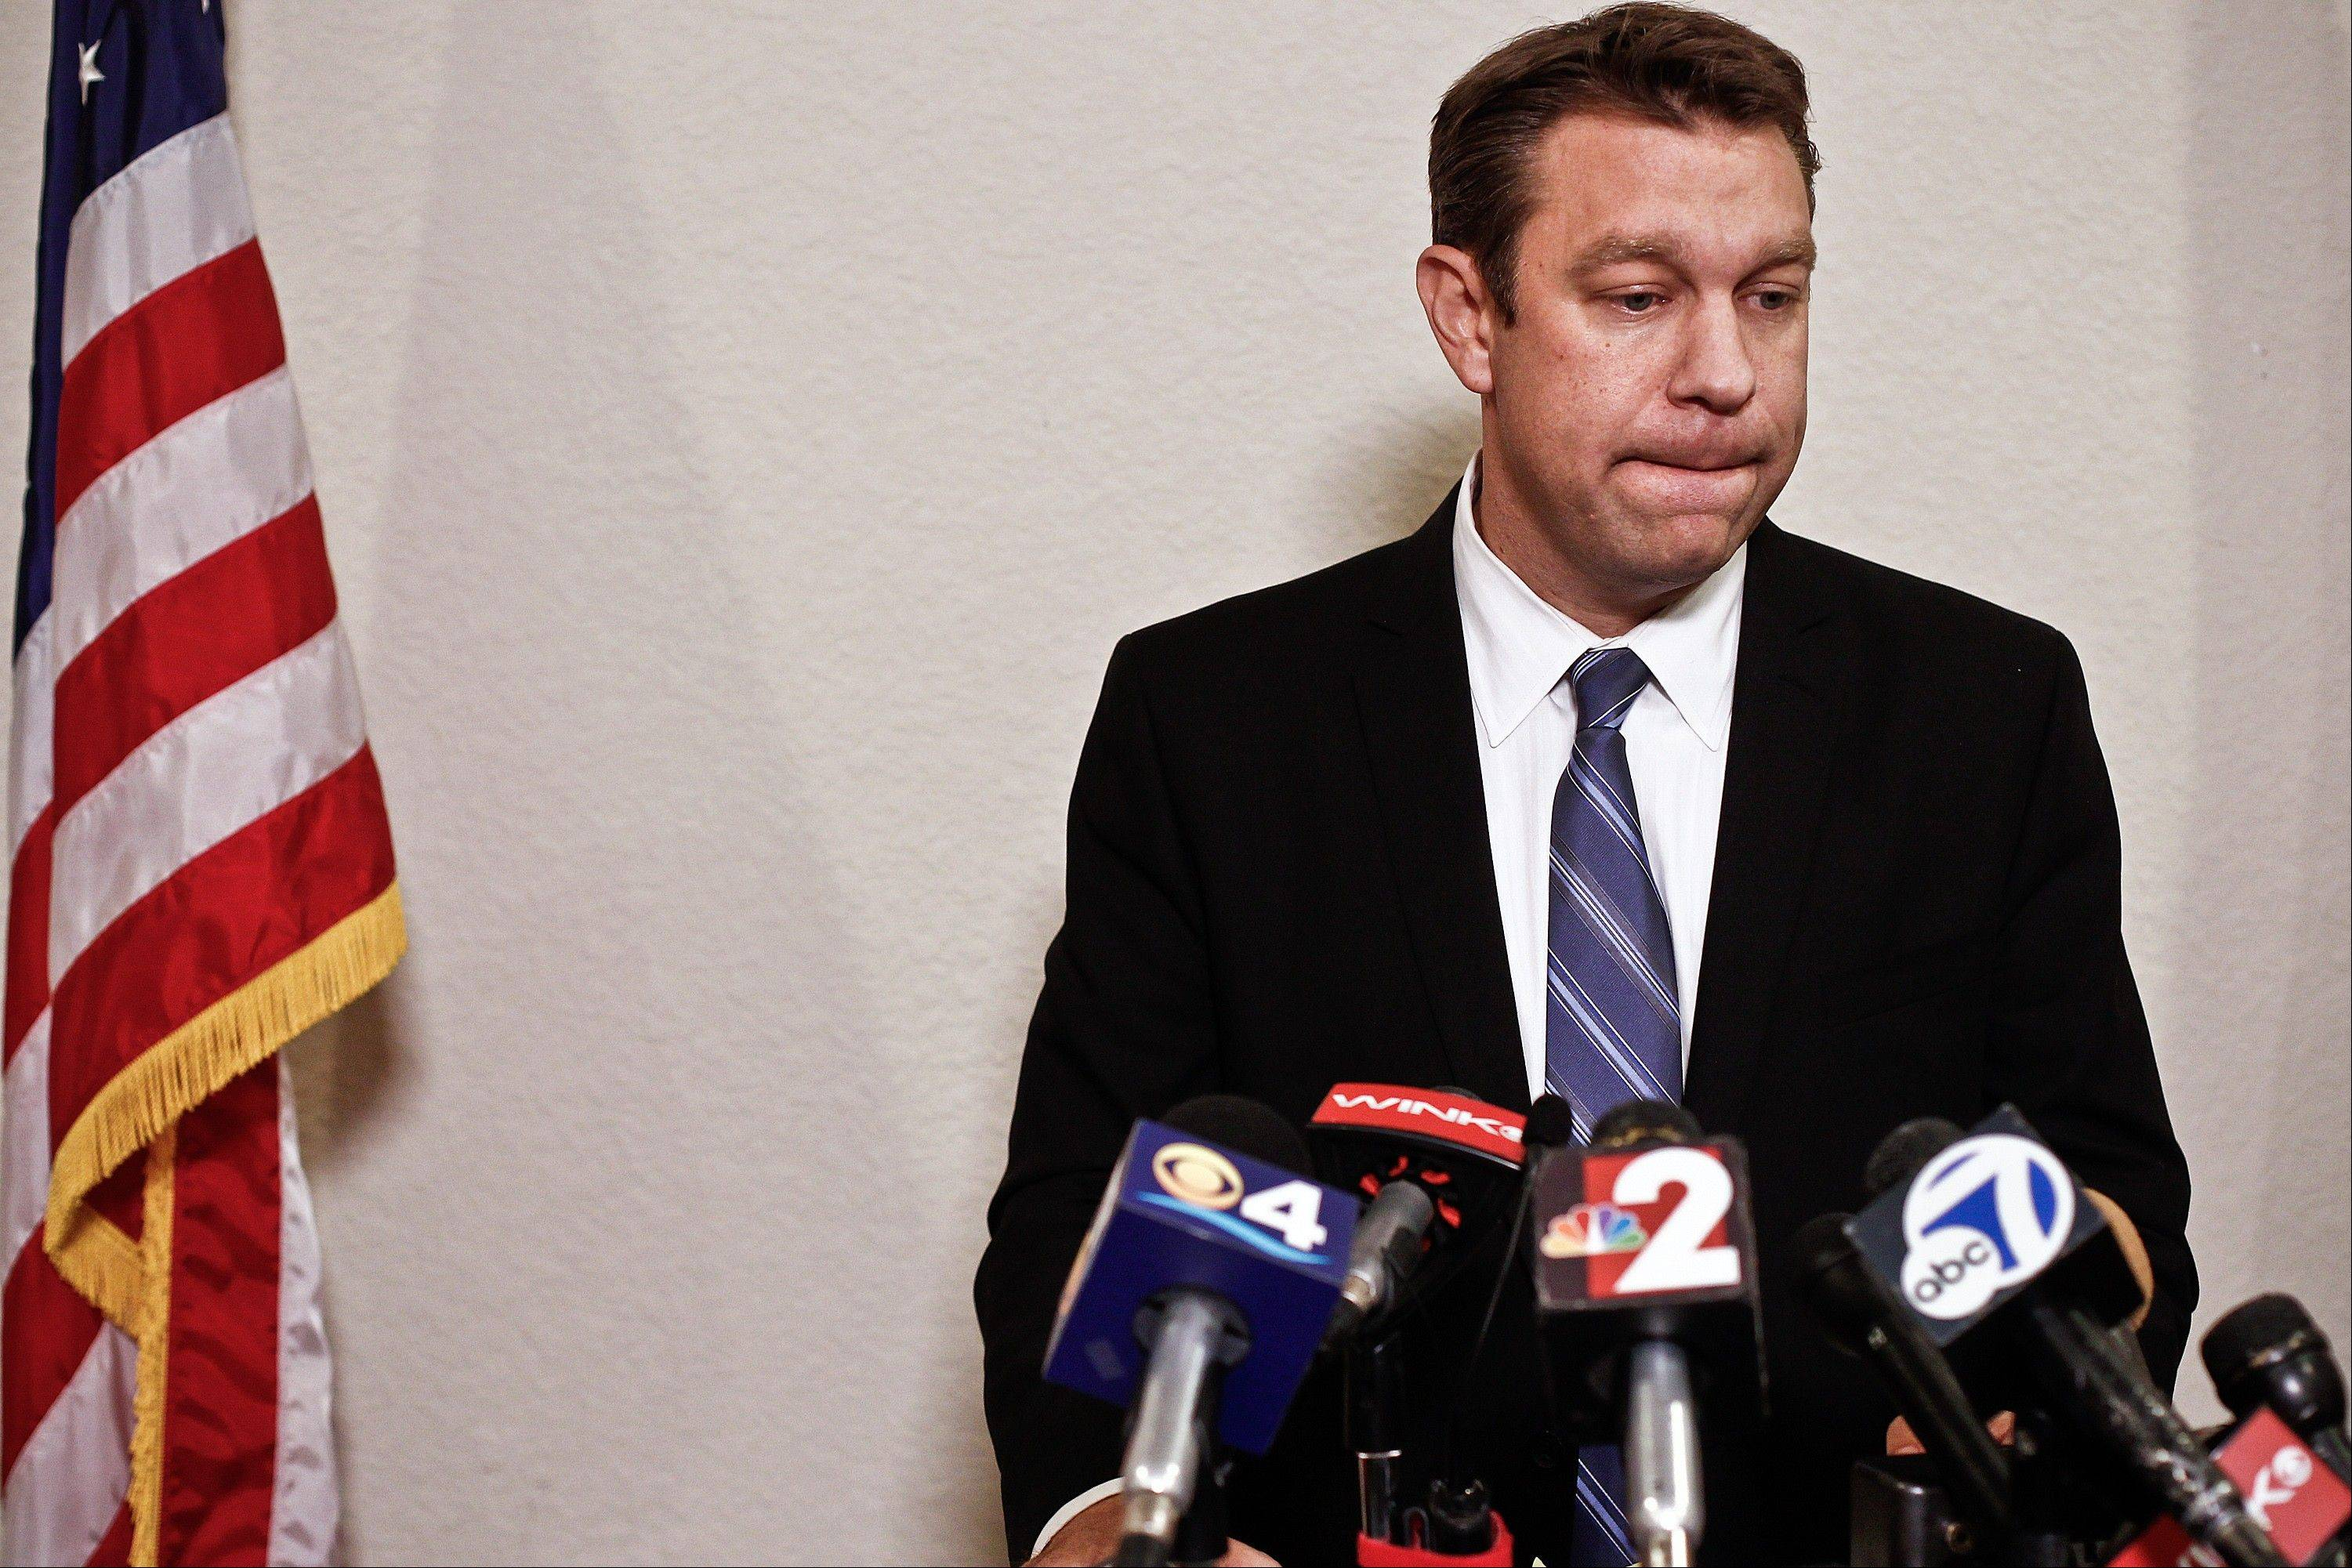 Congressman Trey Radel takes a moment to himself Wednesday as he addresses the media at his office in Cape Coral.